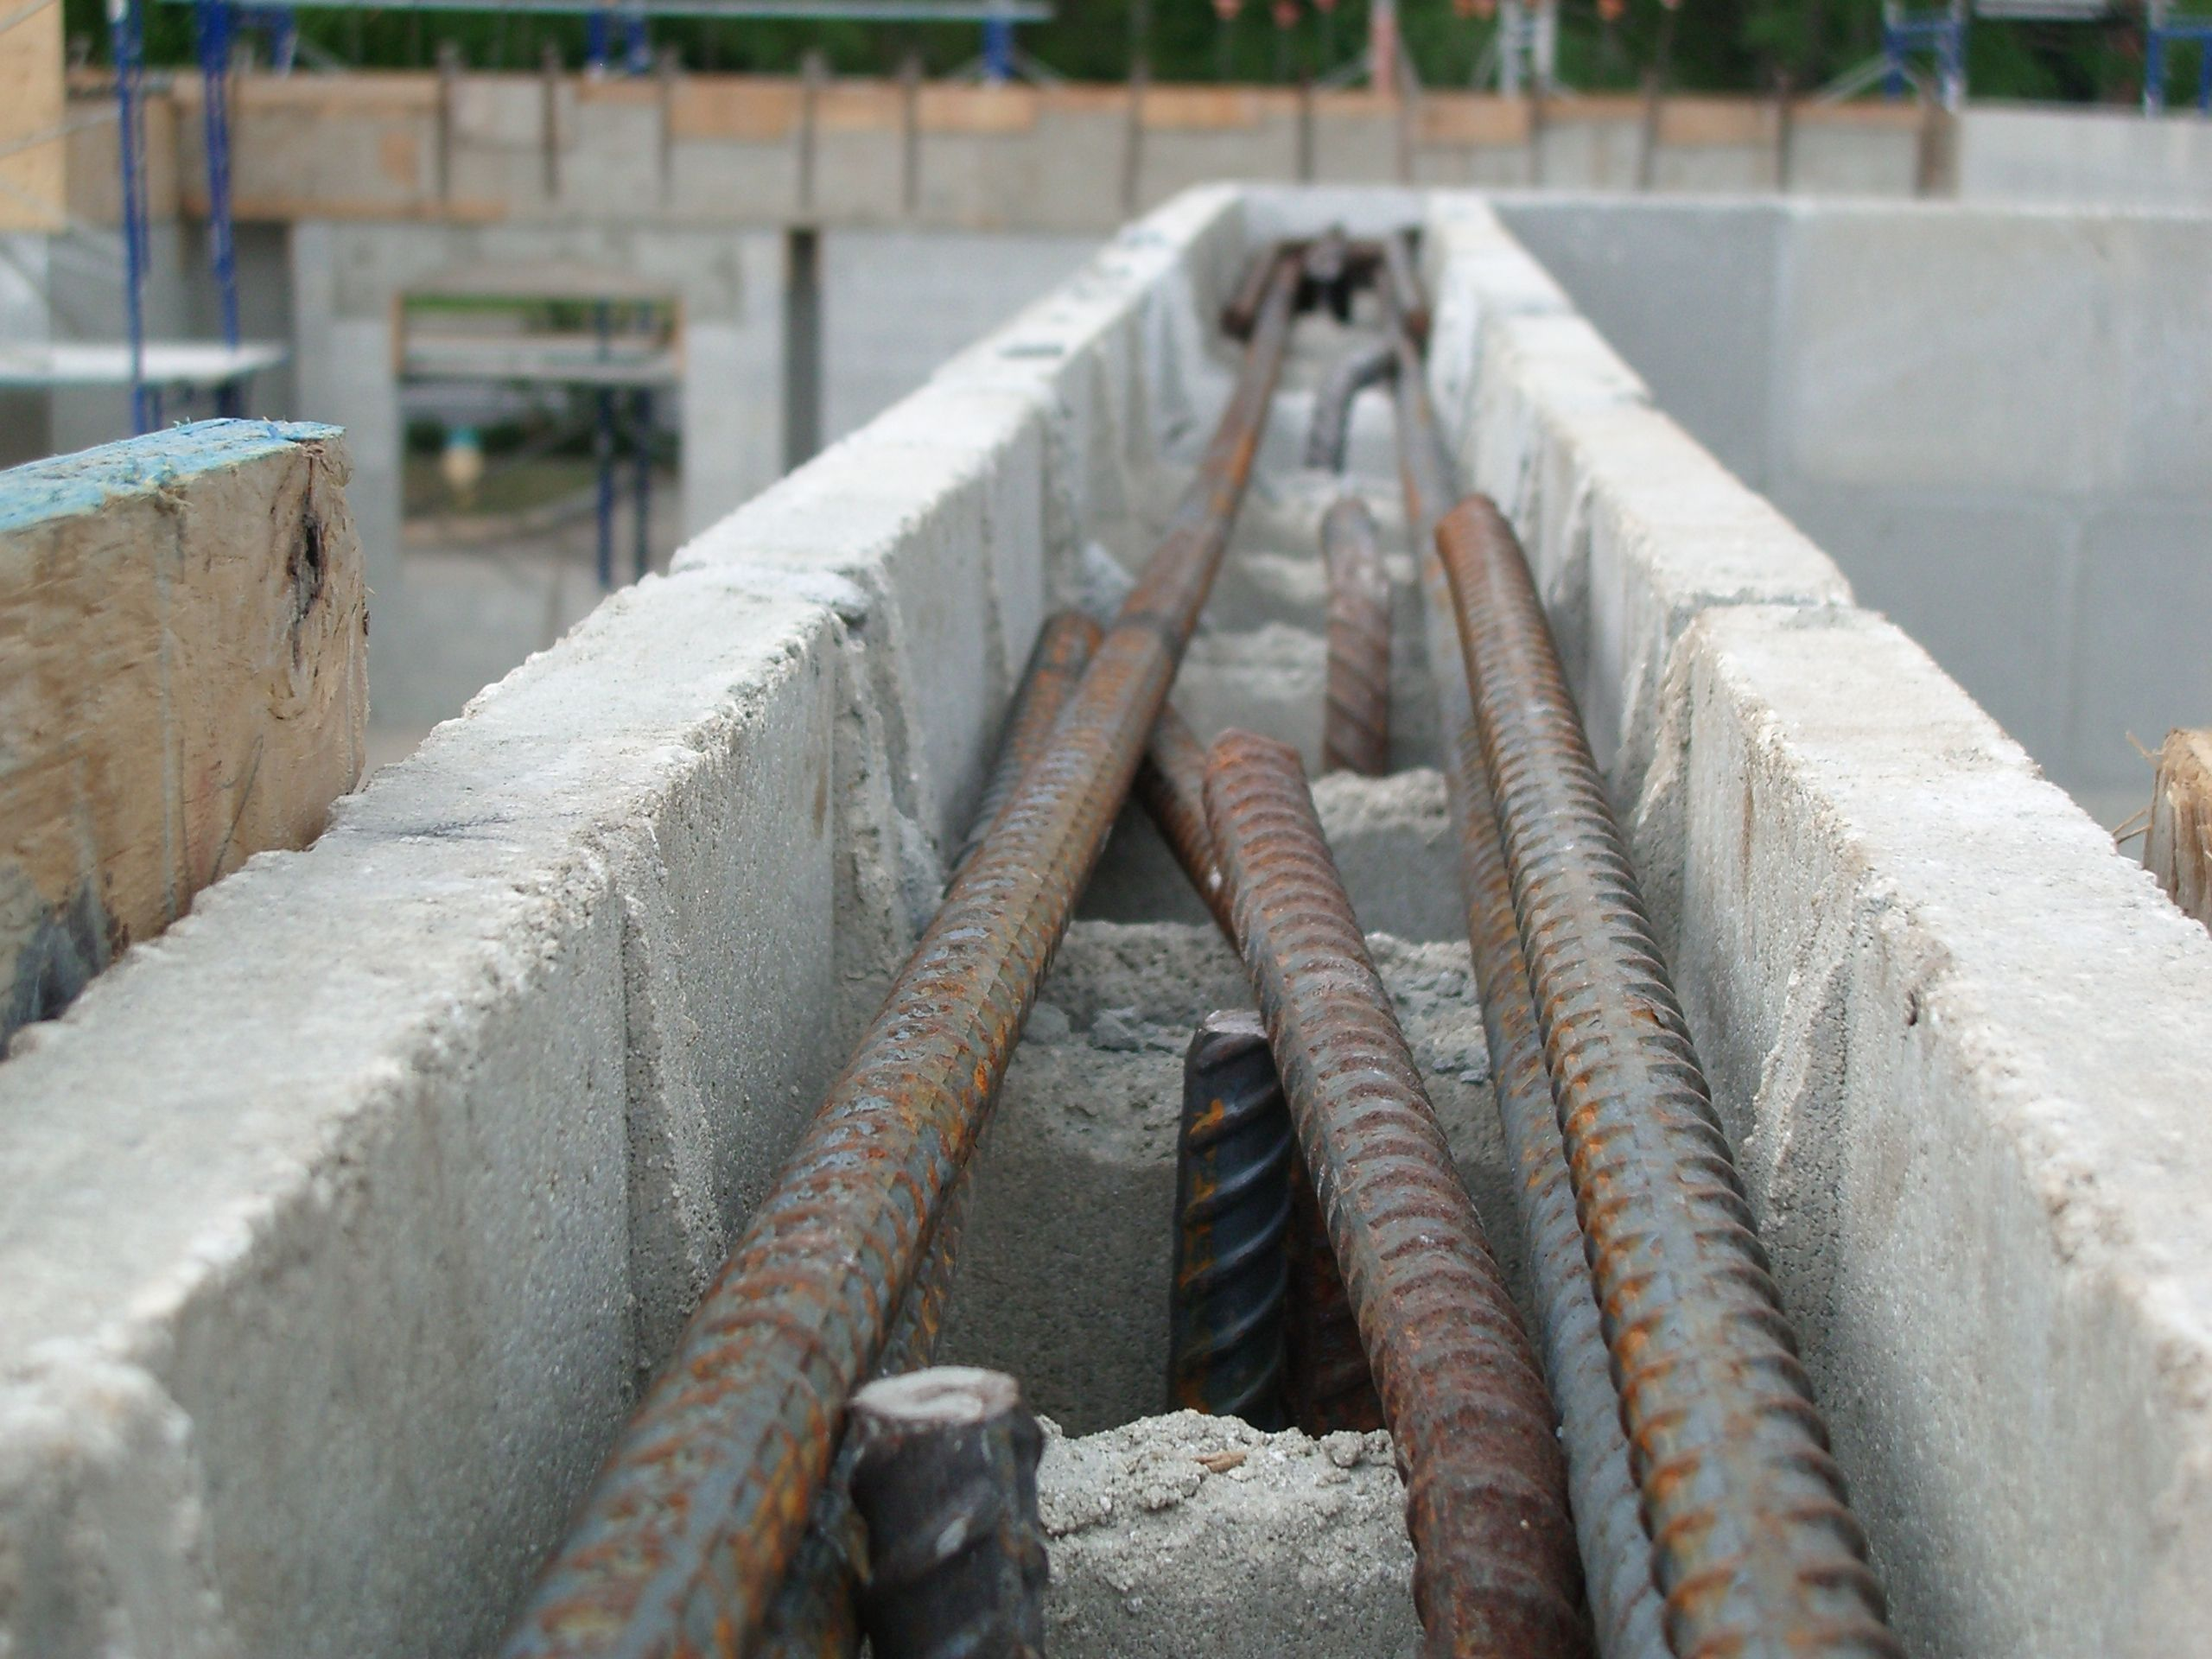 Rebar In Lintel Beam Under Construction Icf Home